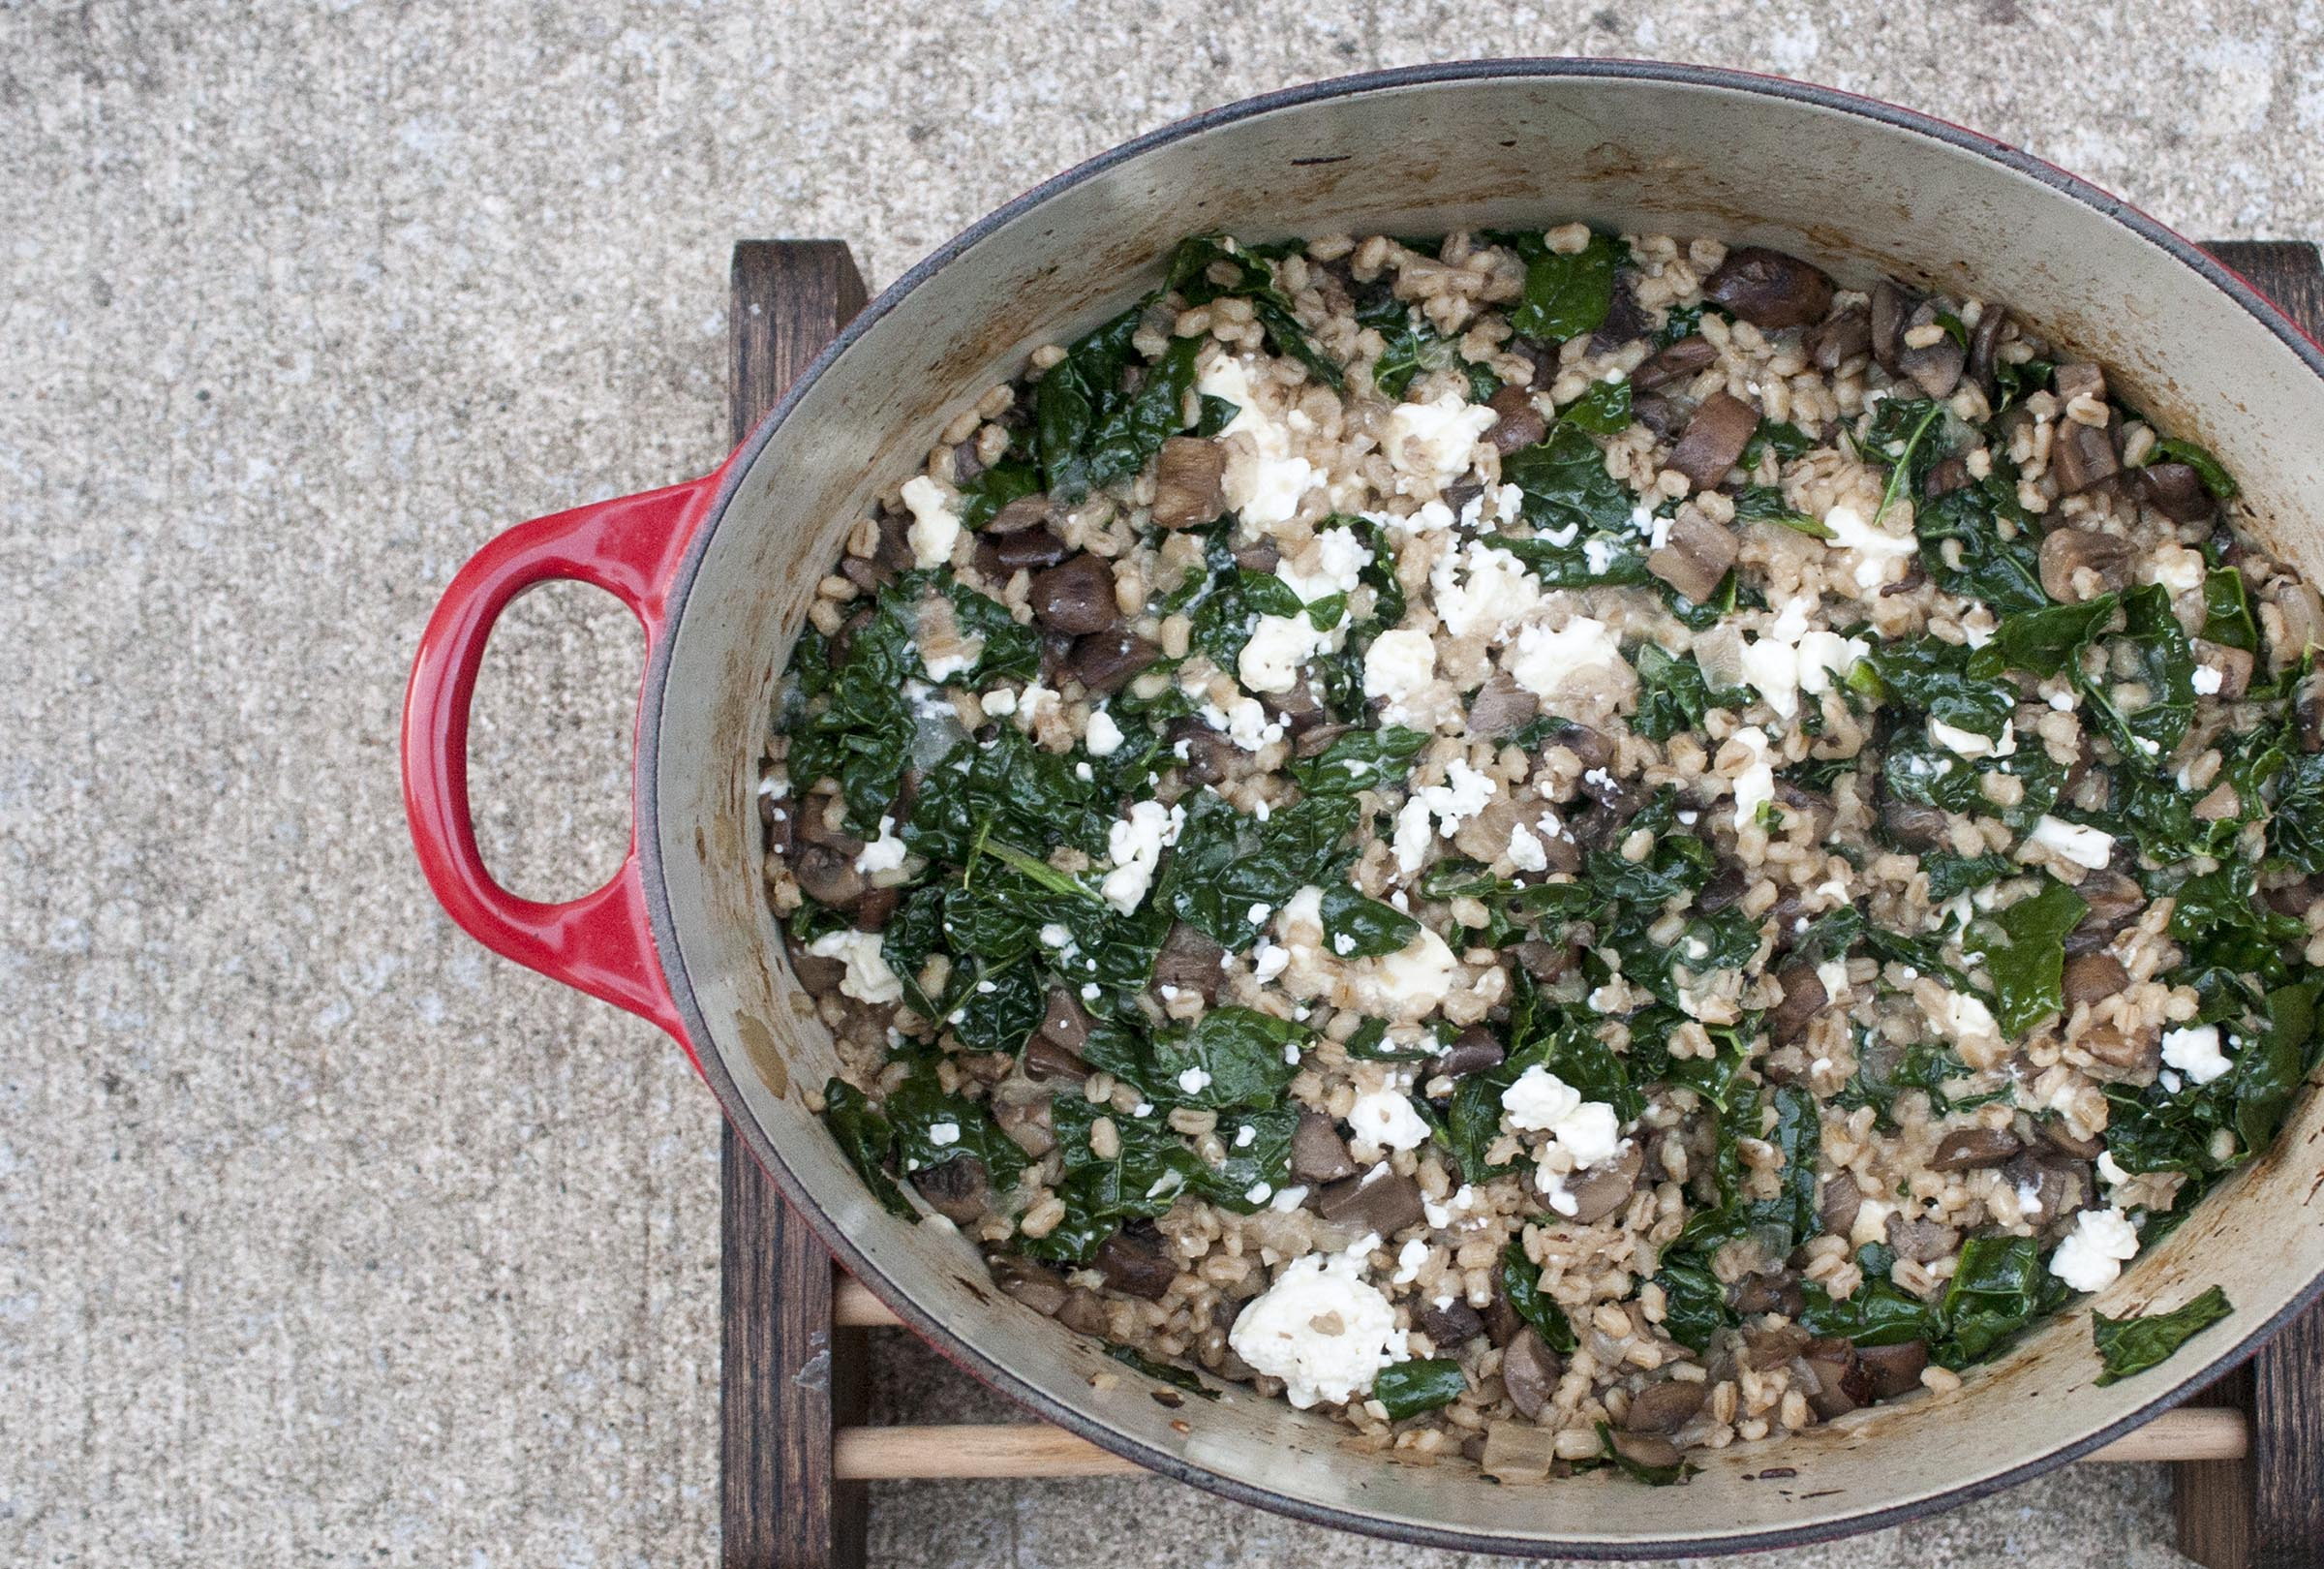 Creamy and Hearty Baked Barley Risotto made with sherry, lacinato kale, cremini mushrooms, feta cheese and sherry. lifeaswetookit.com